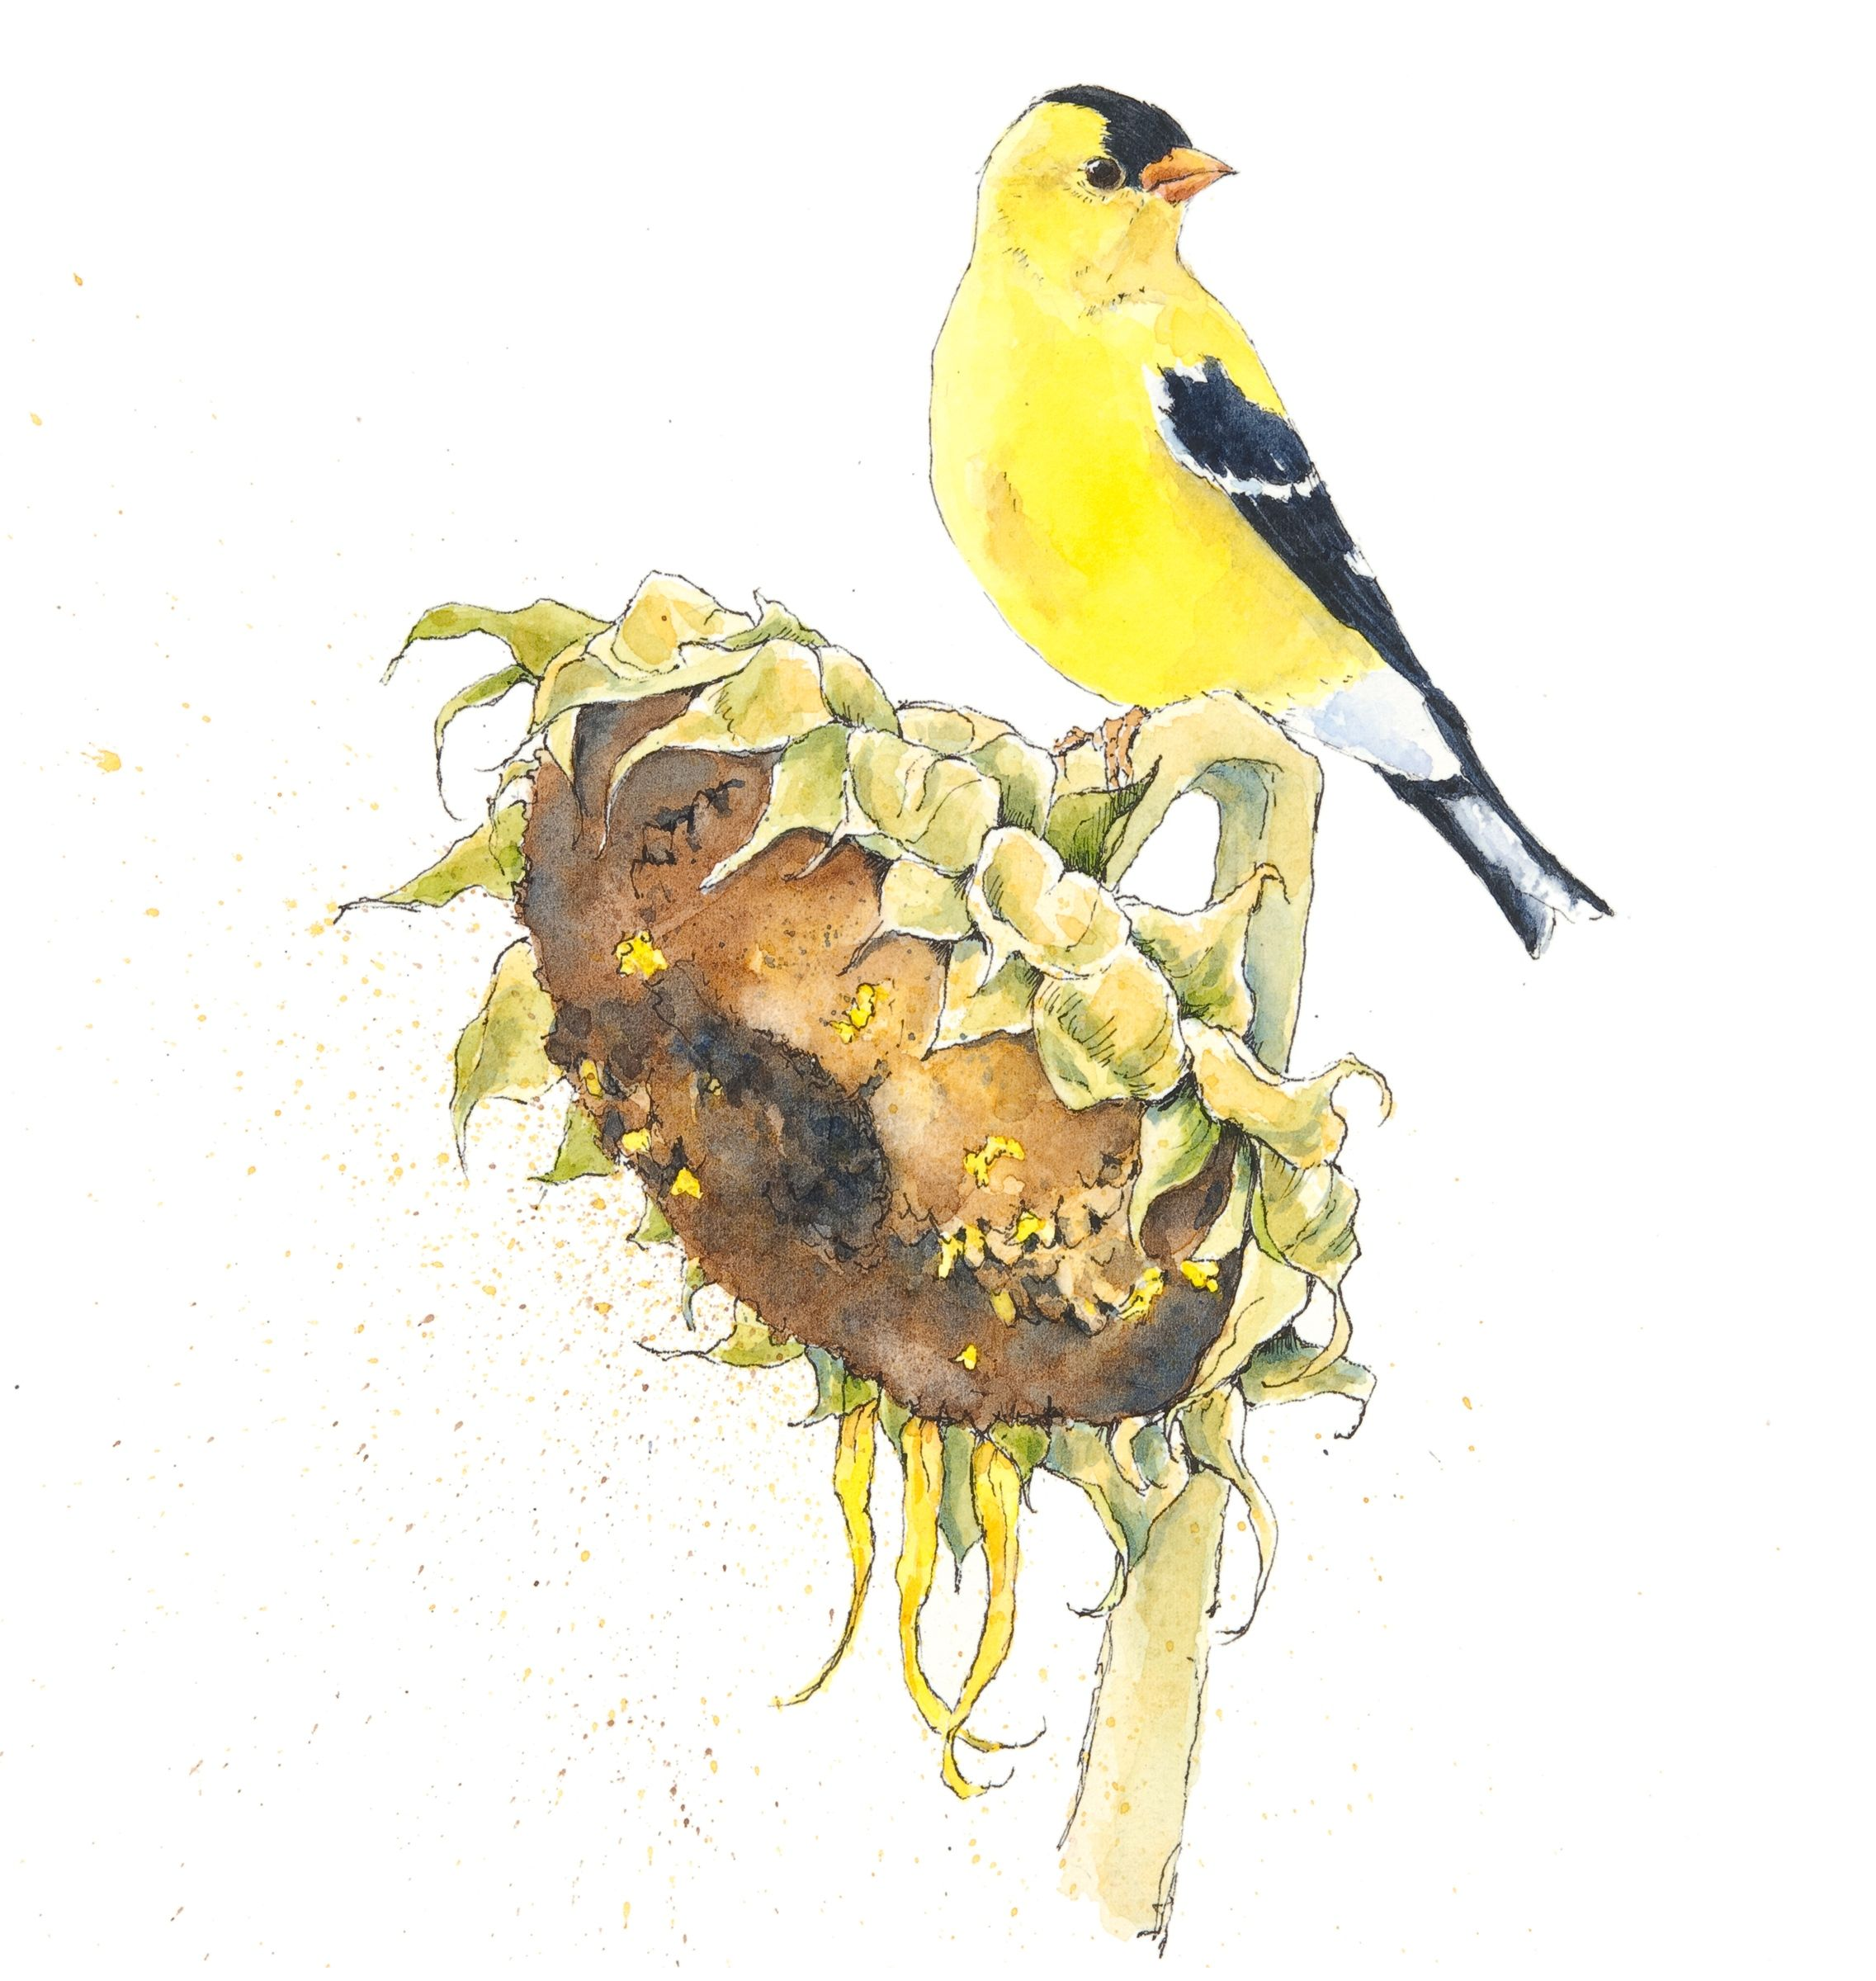 goldfinch drawn in